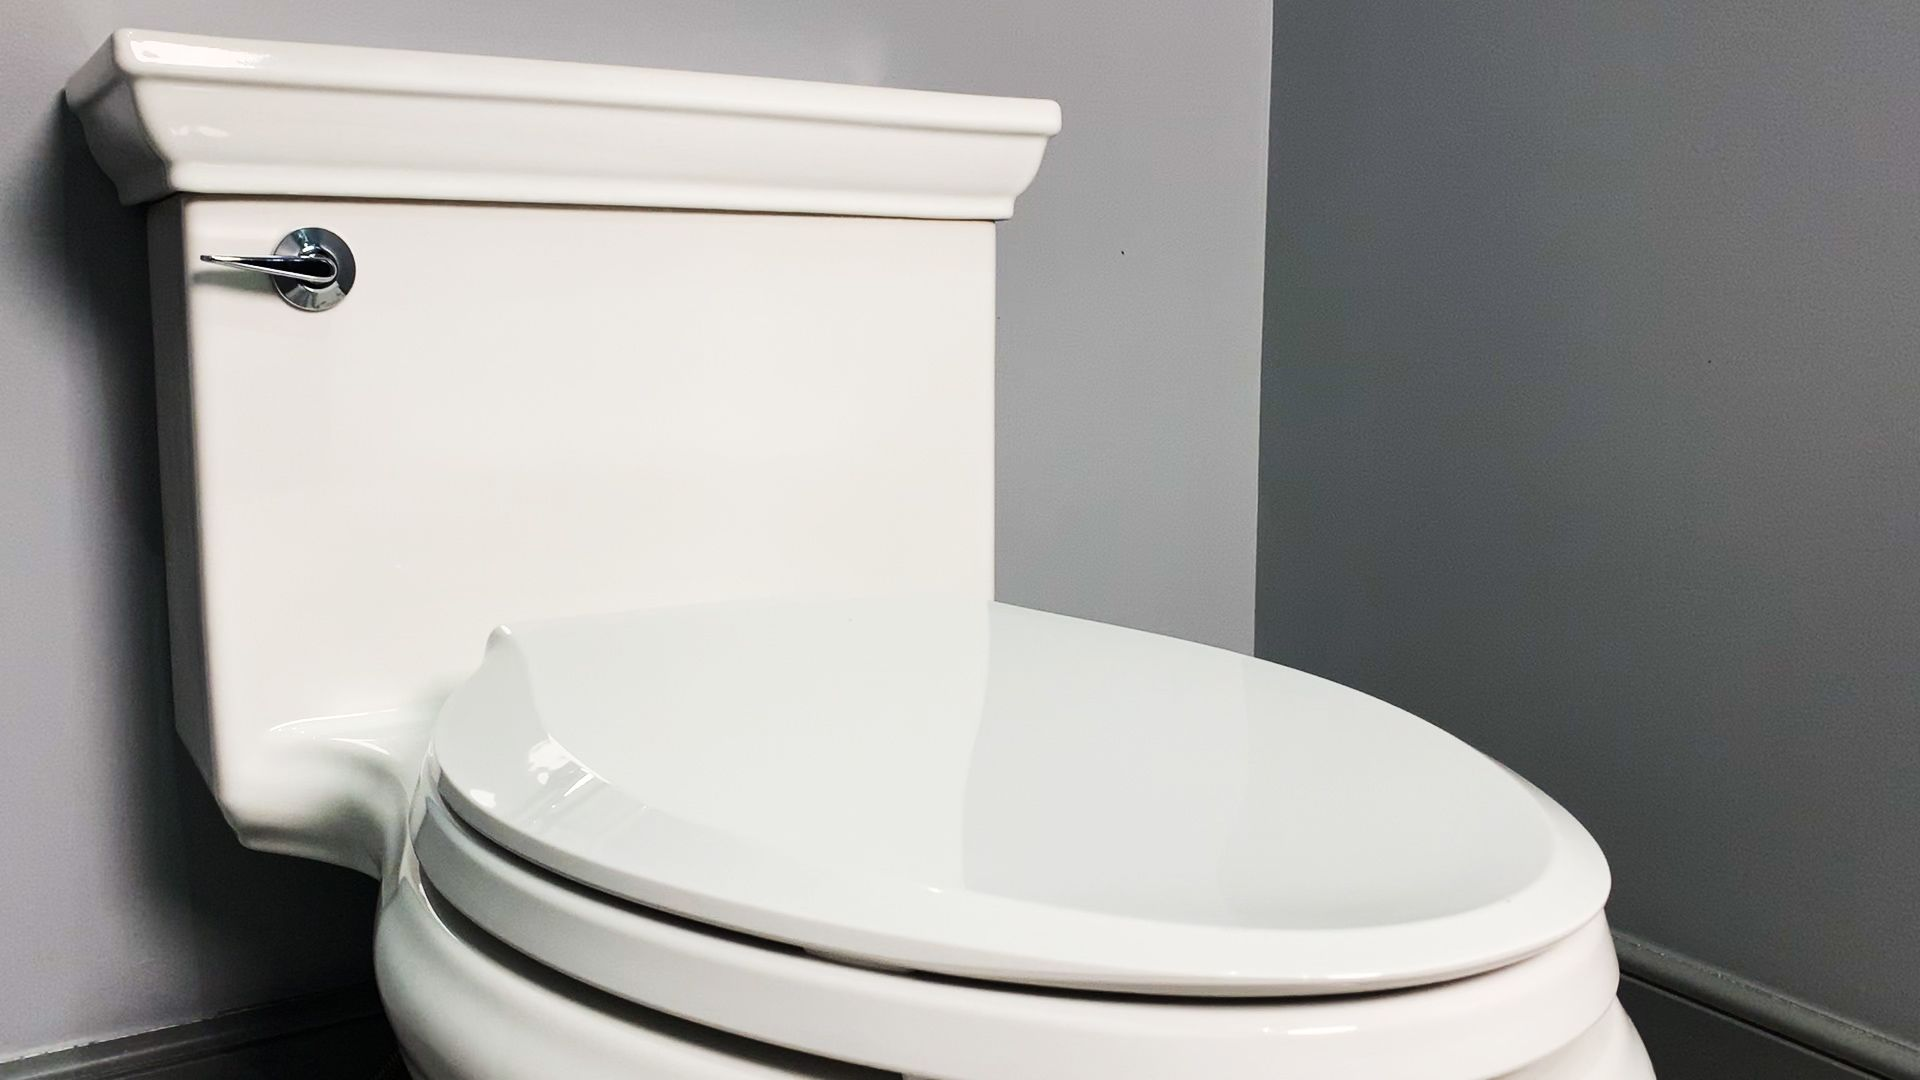 Install A Toilet How To Install A Toilet Toilet Installation Step By Step Video